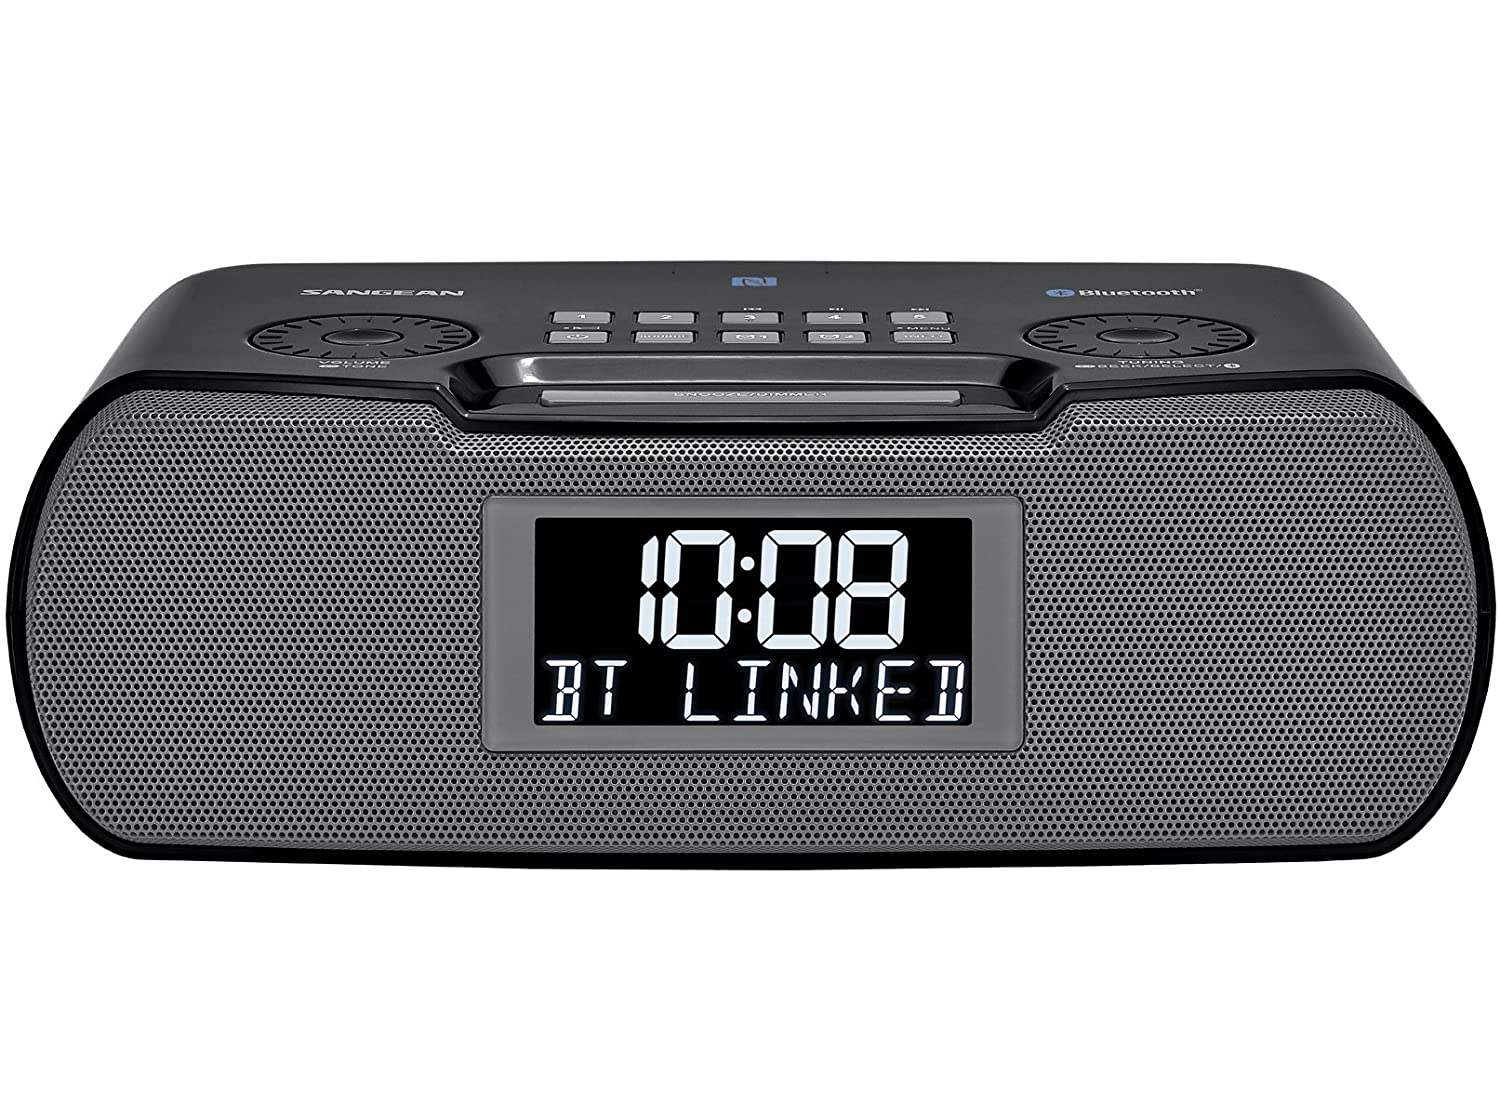 Top 9 Best Sounding Clock Radio On The Market - Buyer's Guide 34